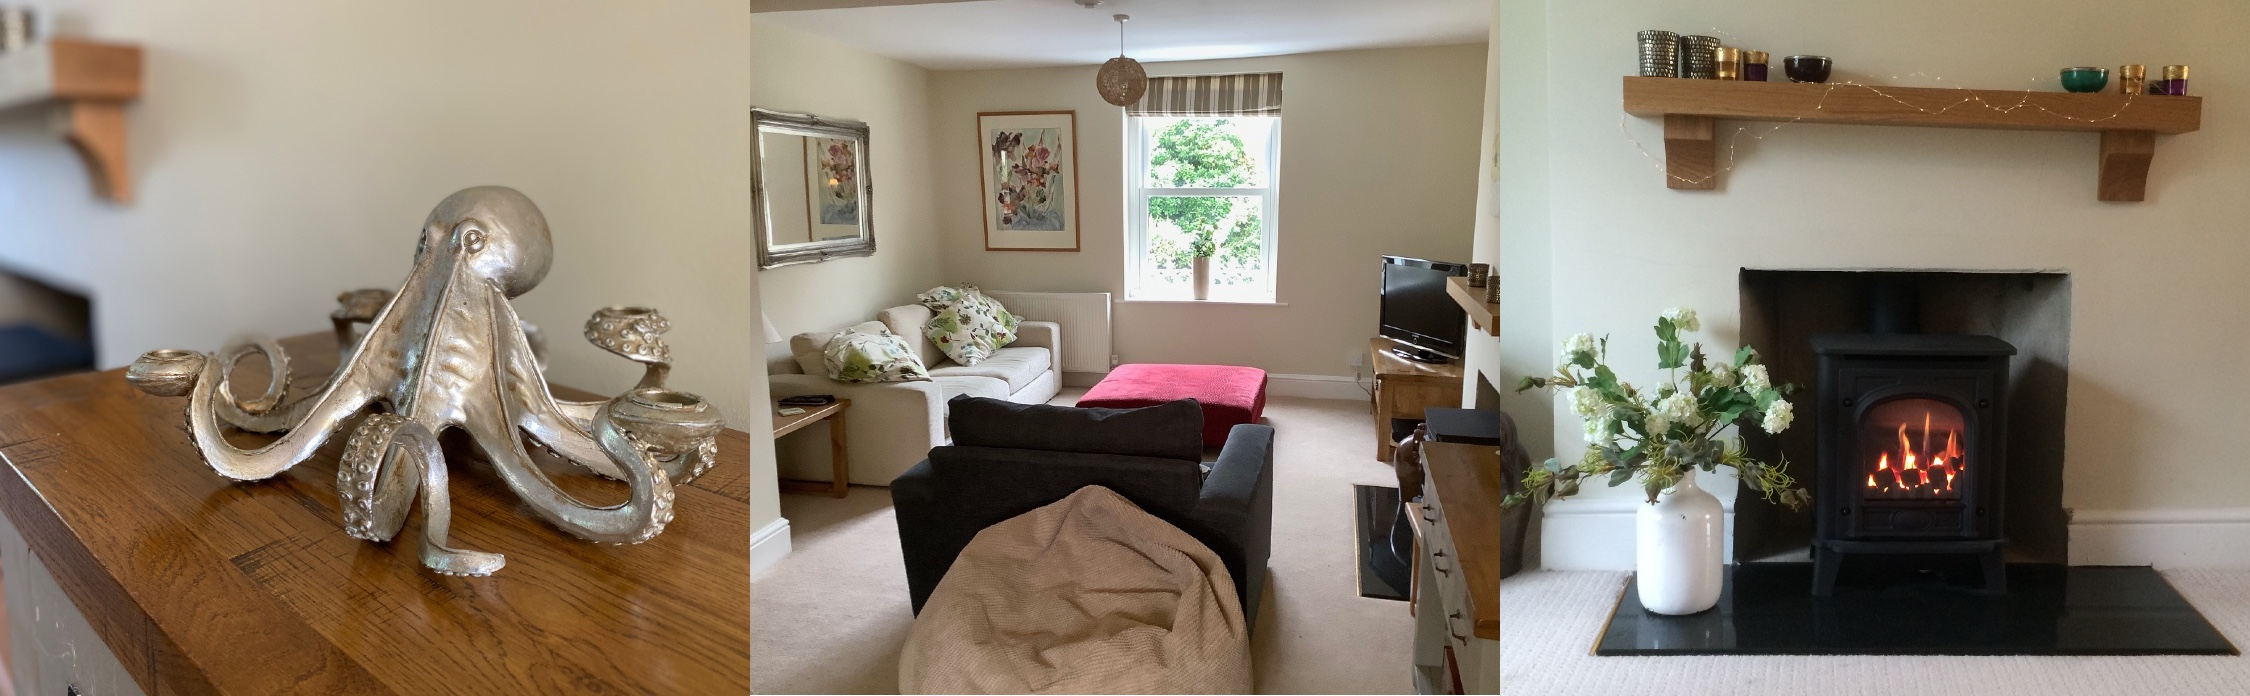 Holiday cottage rooms to rent in Instow